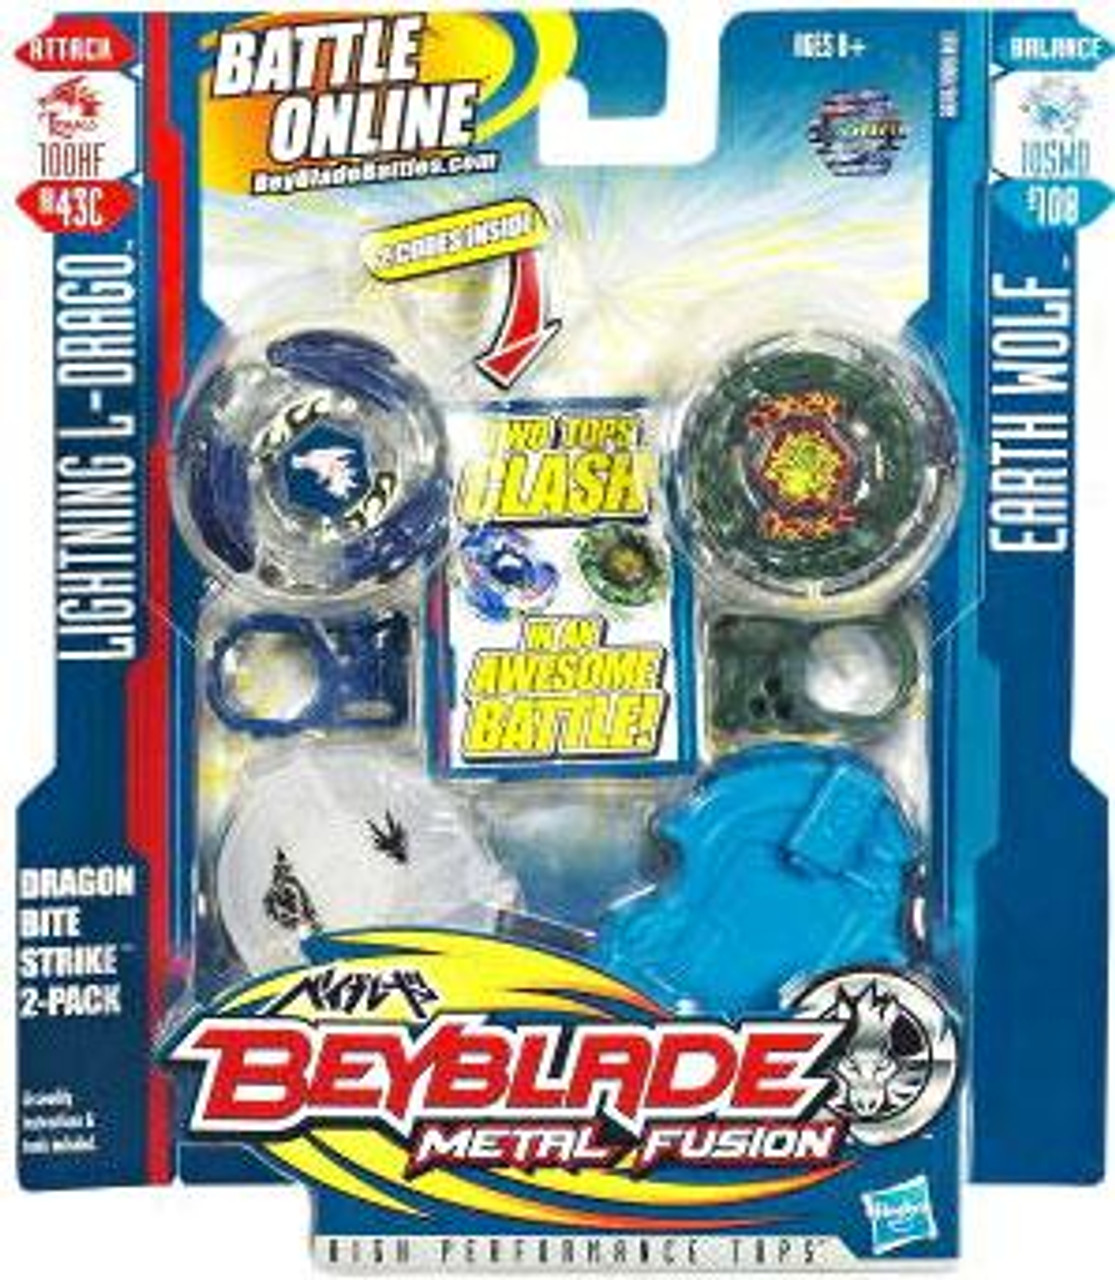 Beyblade Metal Fusion Dragon Bite Strike 2-Pack BB43C